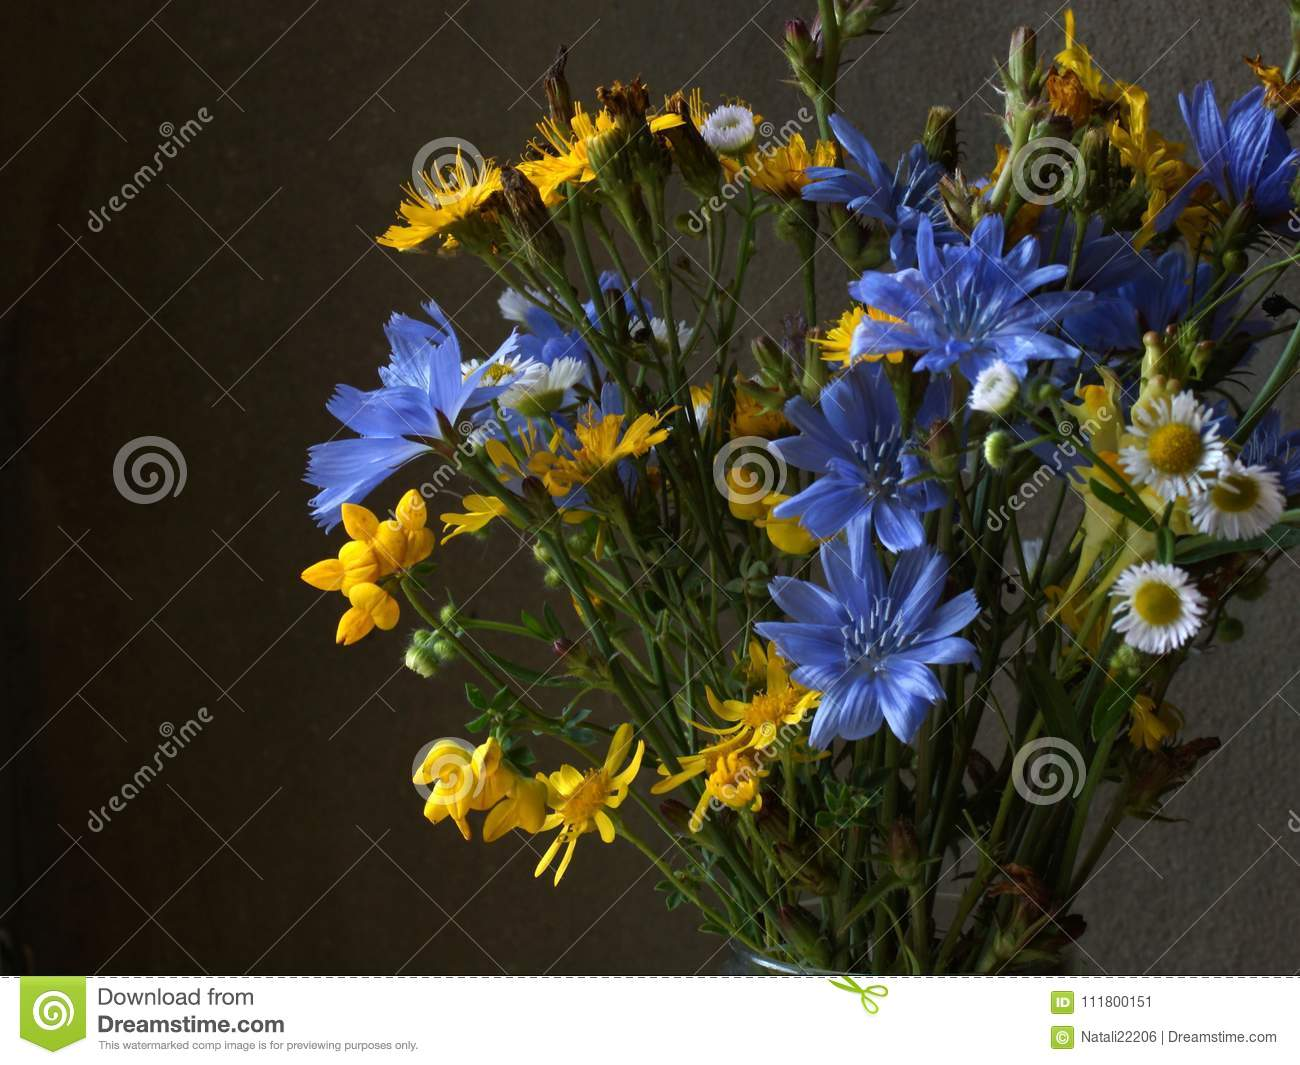 Fiori Gialli Mazzo.Bouquet Of Yellow And Blue Meadow Flowers Stock Image Image Of